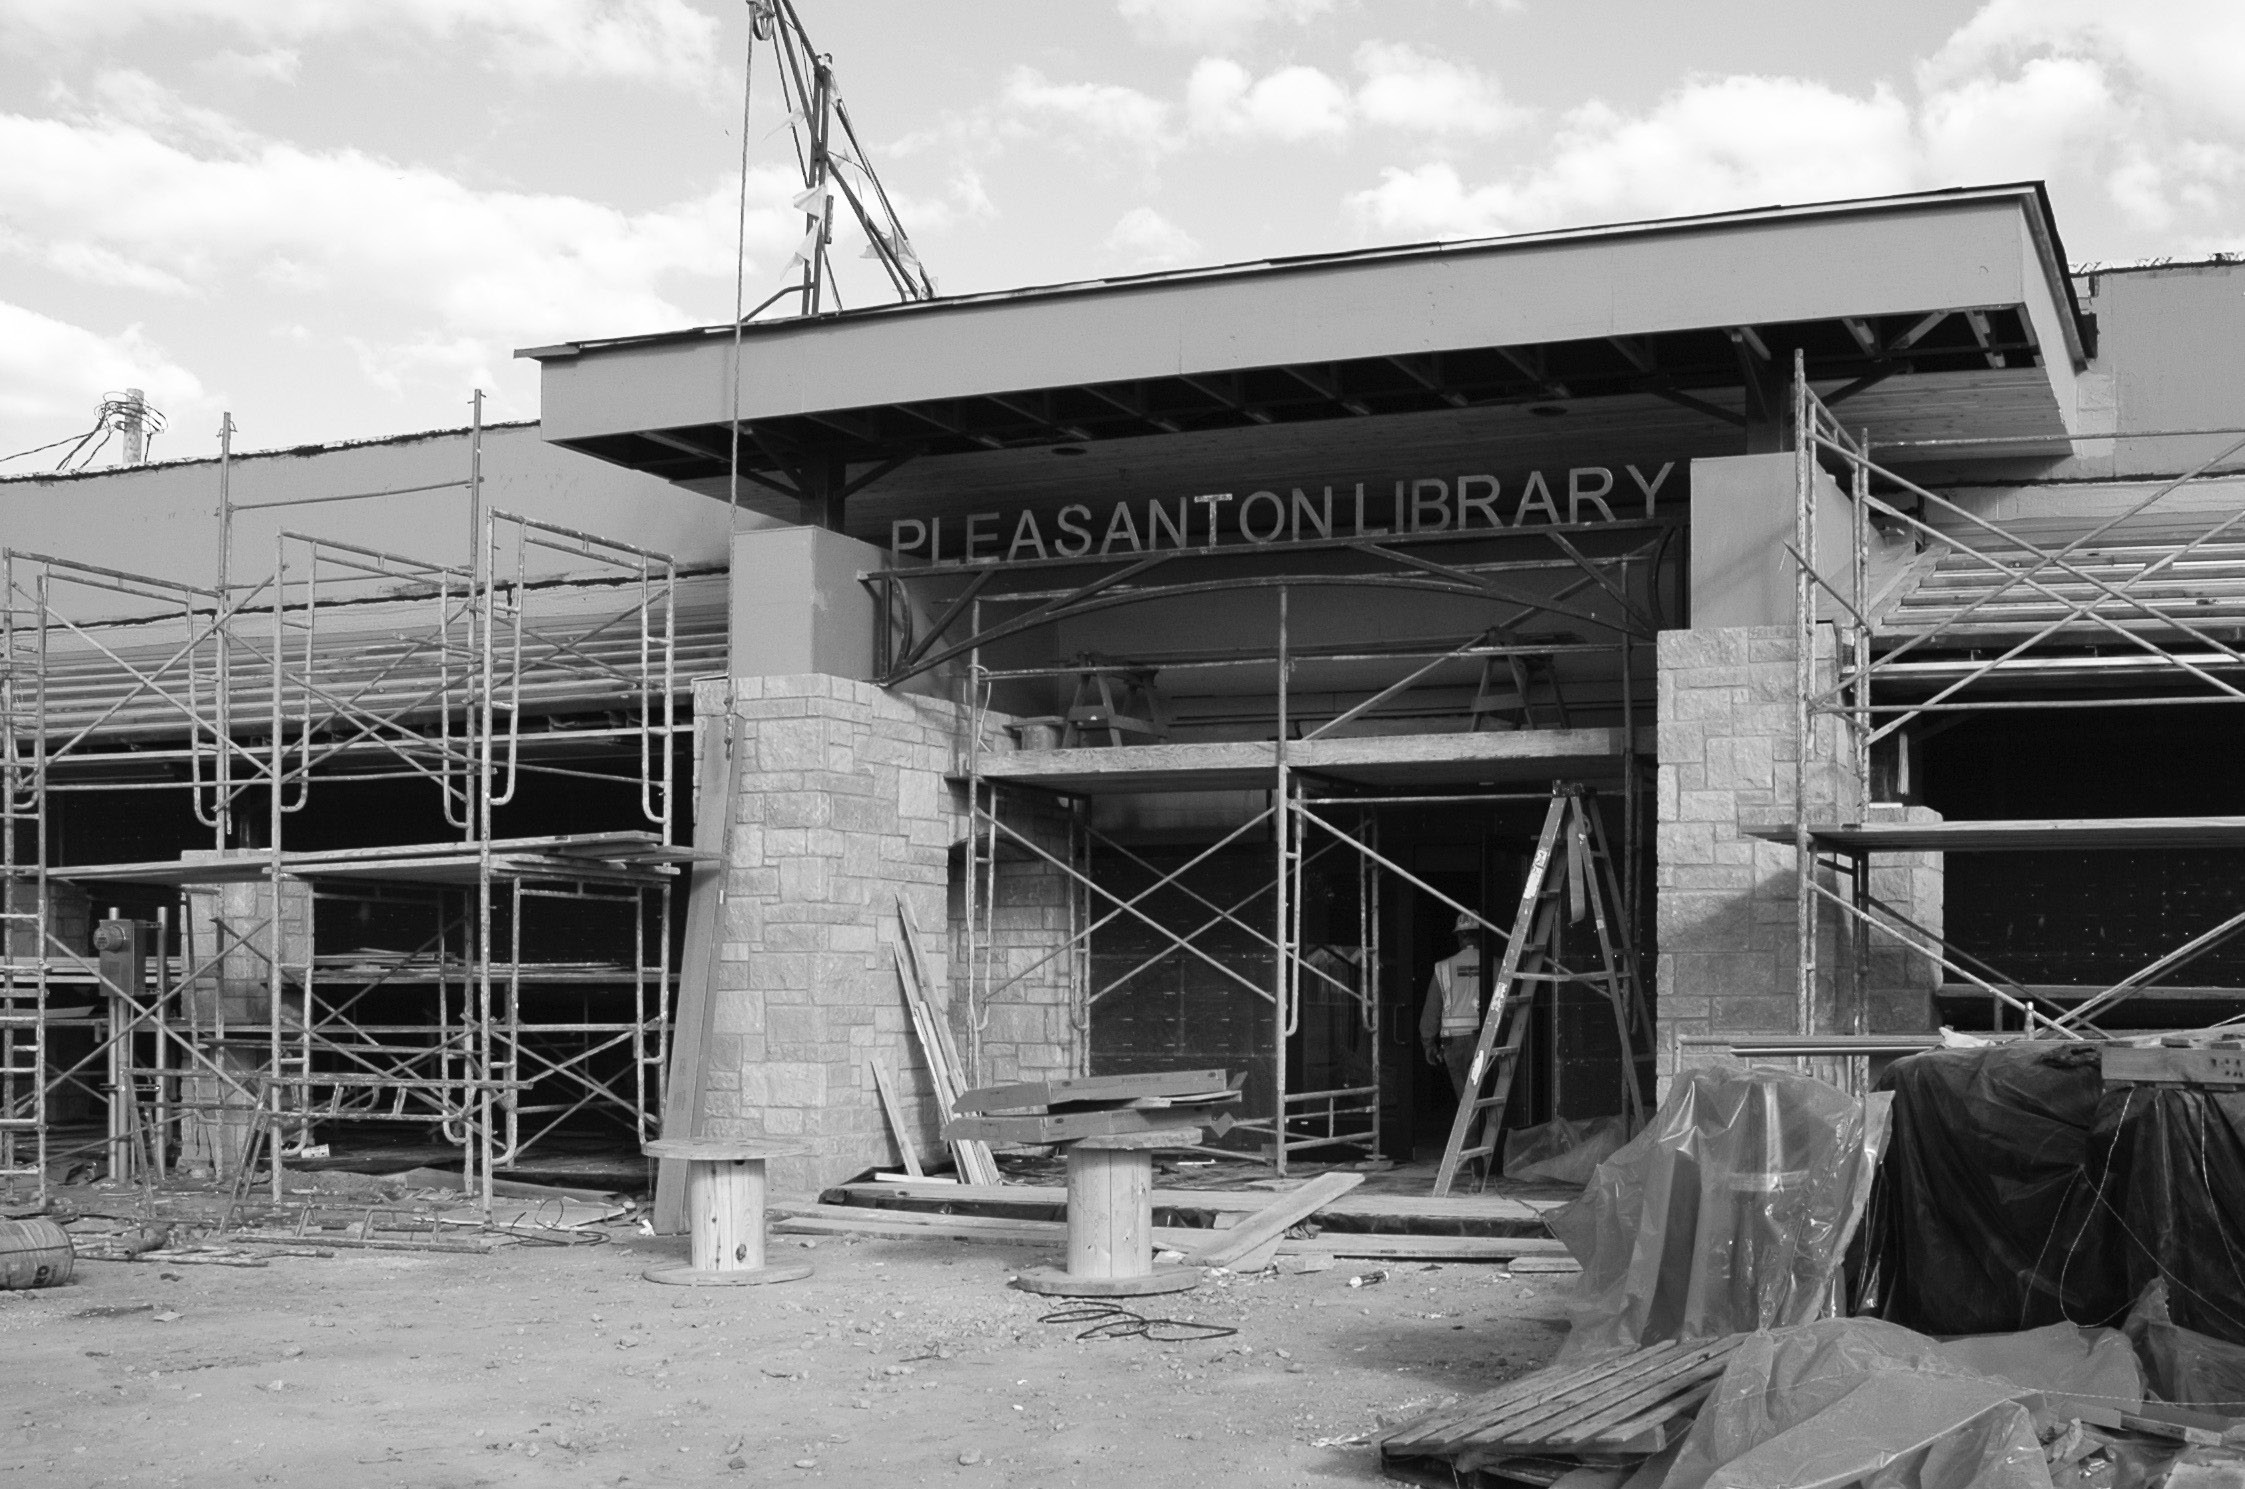 The front of the library on the west side is making progress.